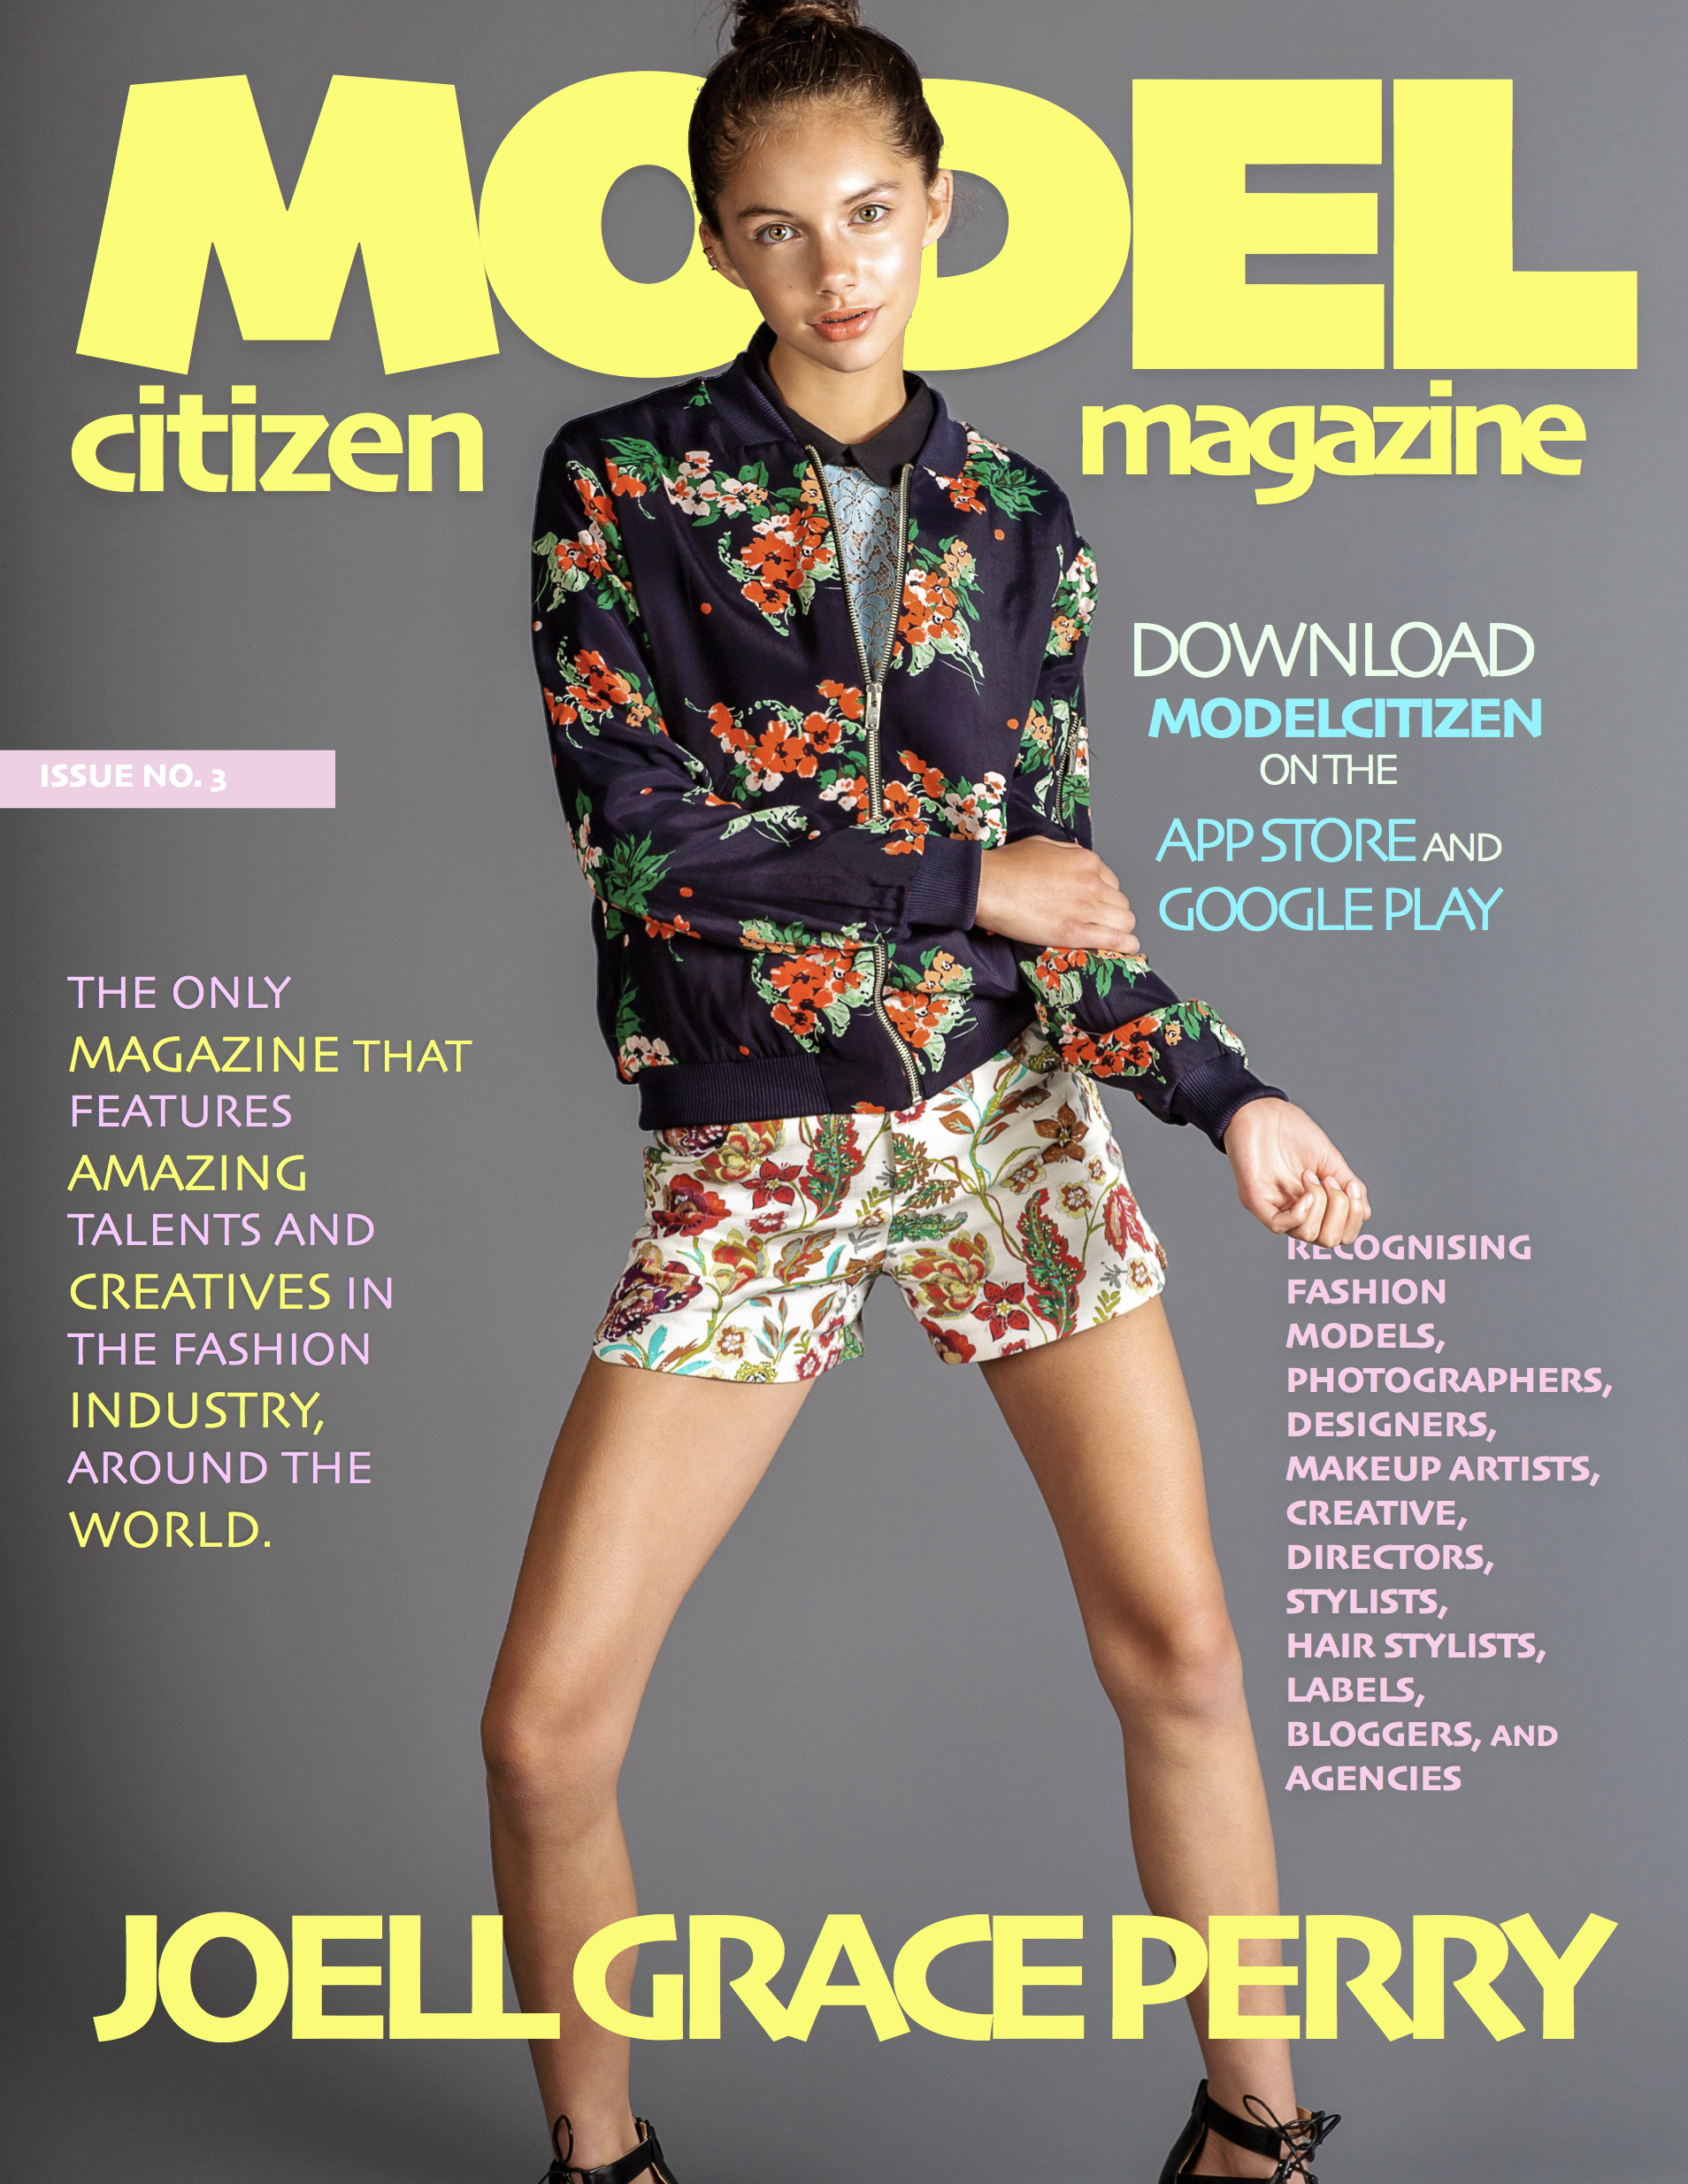 Joell Grace Perry, Model Citizen Magazine